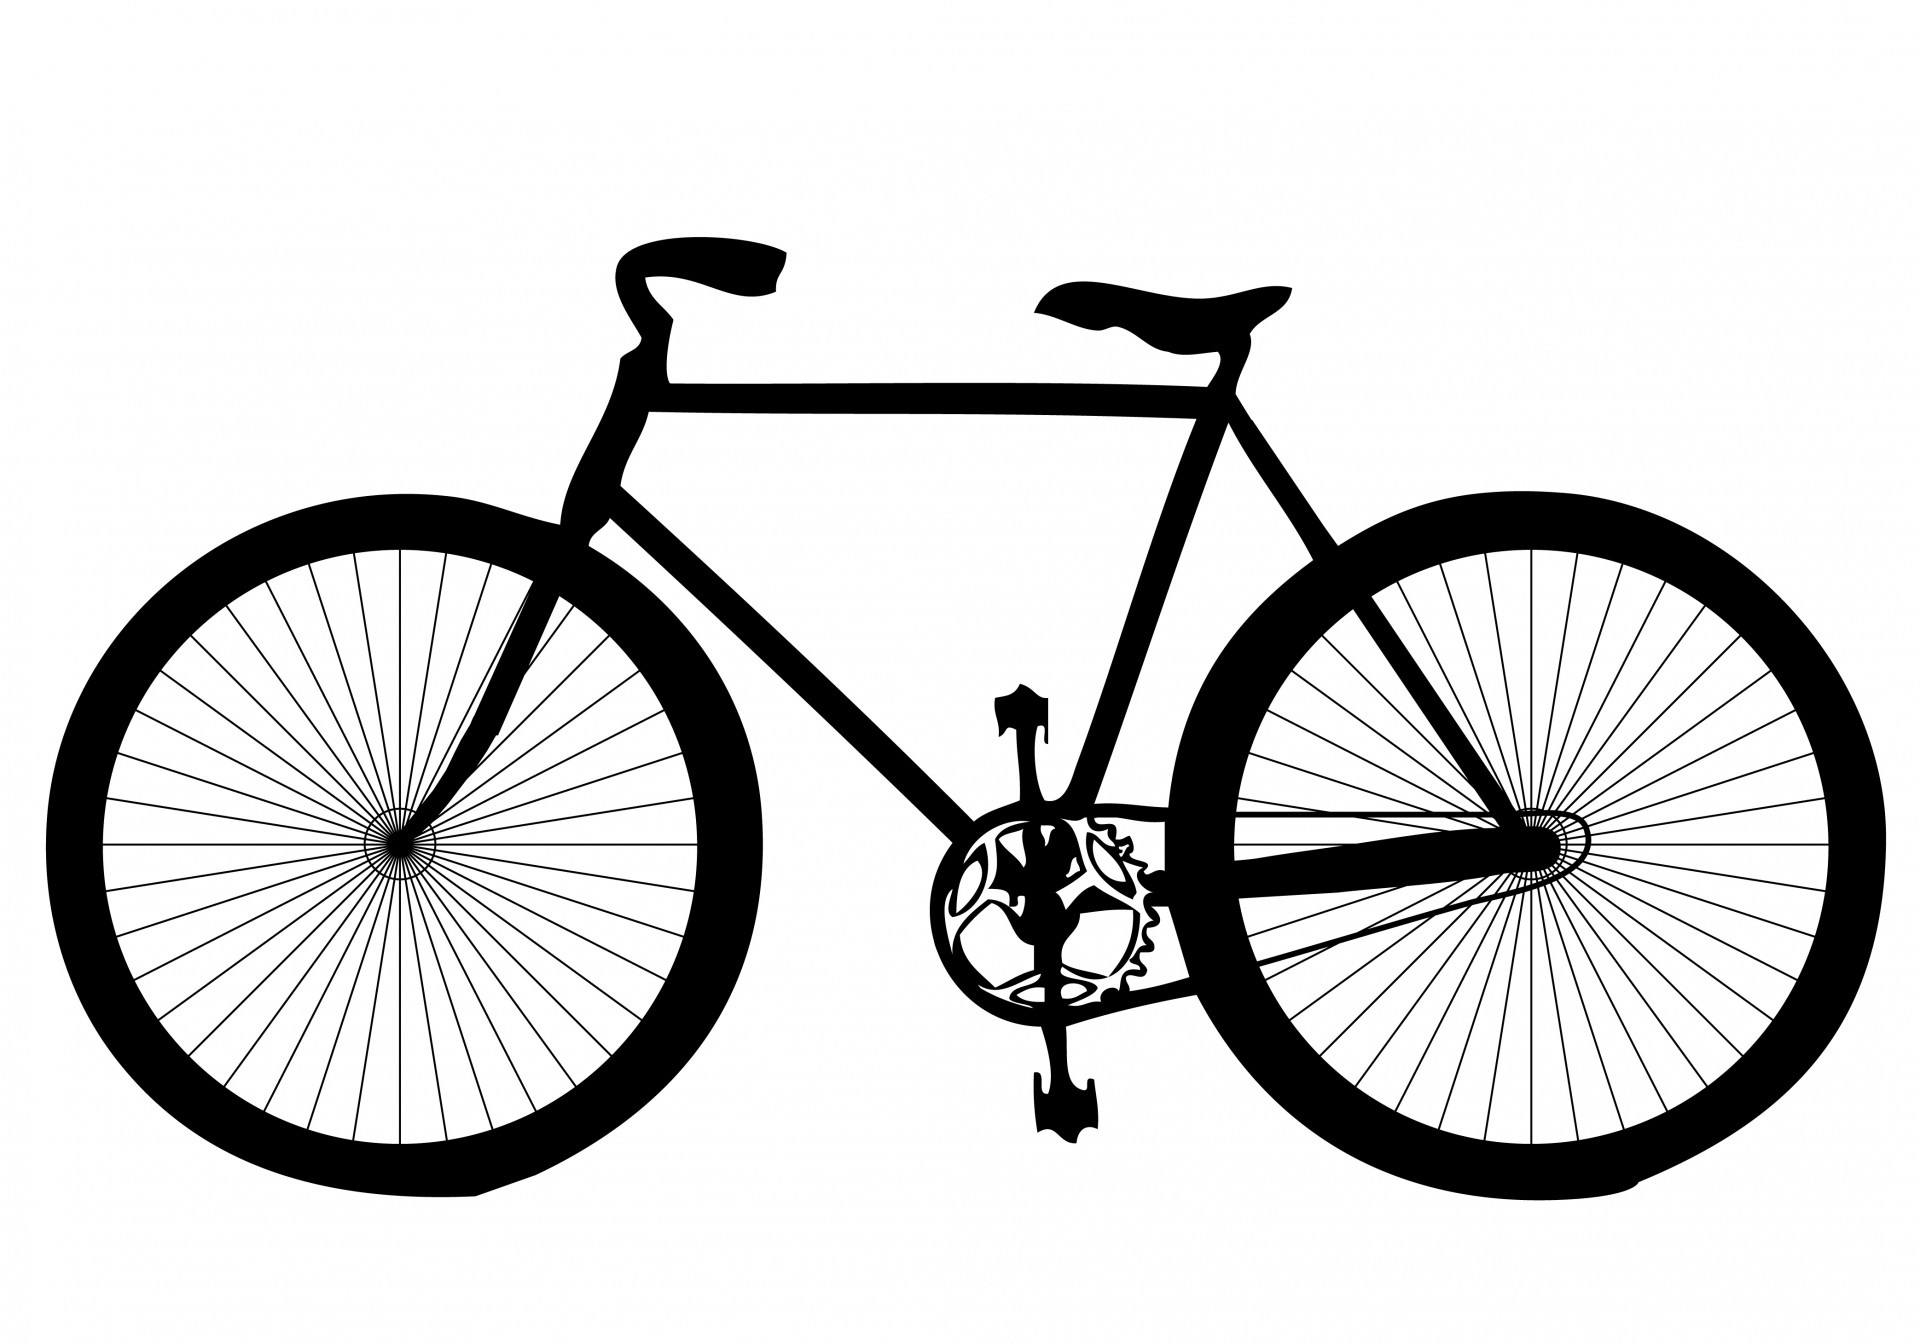 Bicycle free stock photo. Clipart bike